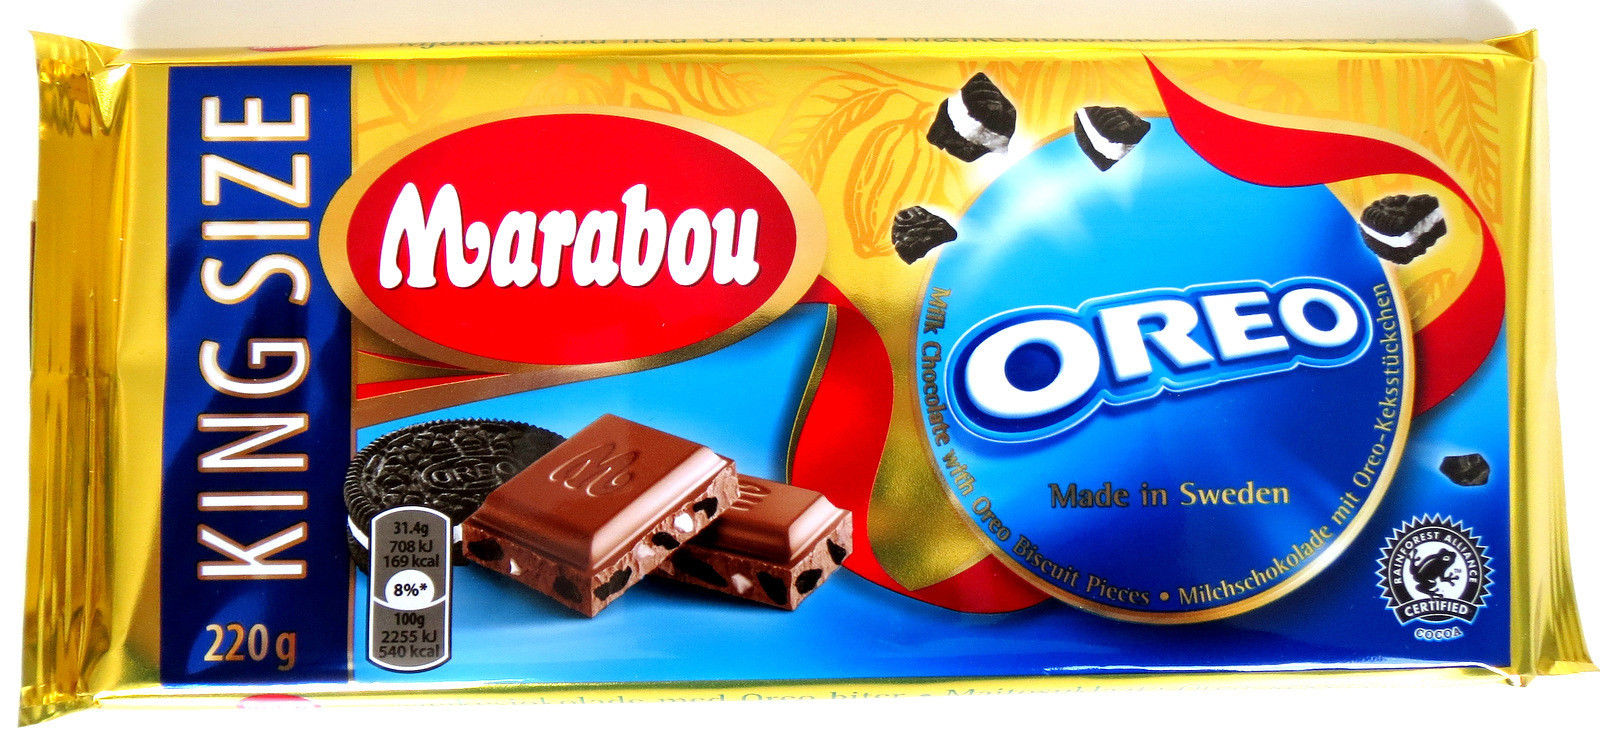 10x marabou oreo biscuit chocolate chokolad schokolade mit oreo keks 220g ebay. Black Bedroom Furniture Sets. Home Design Ideas